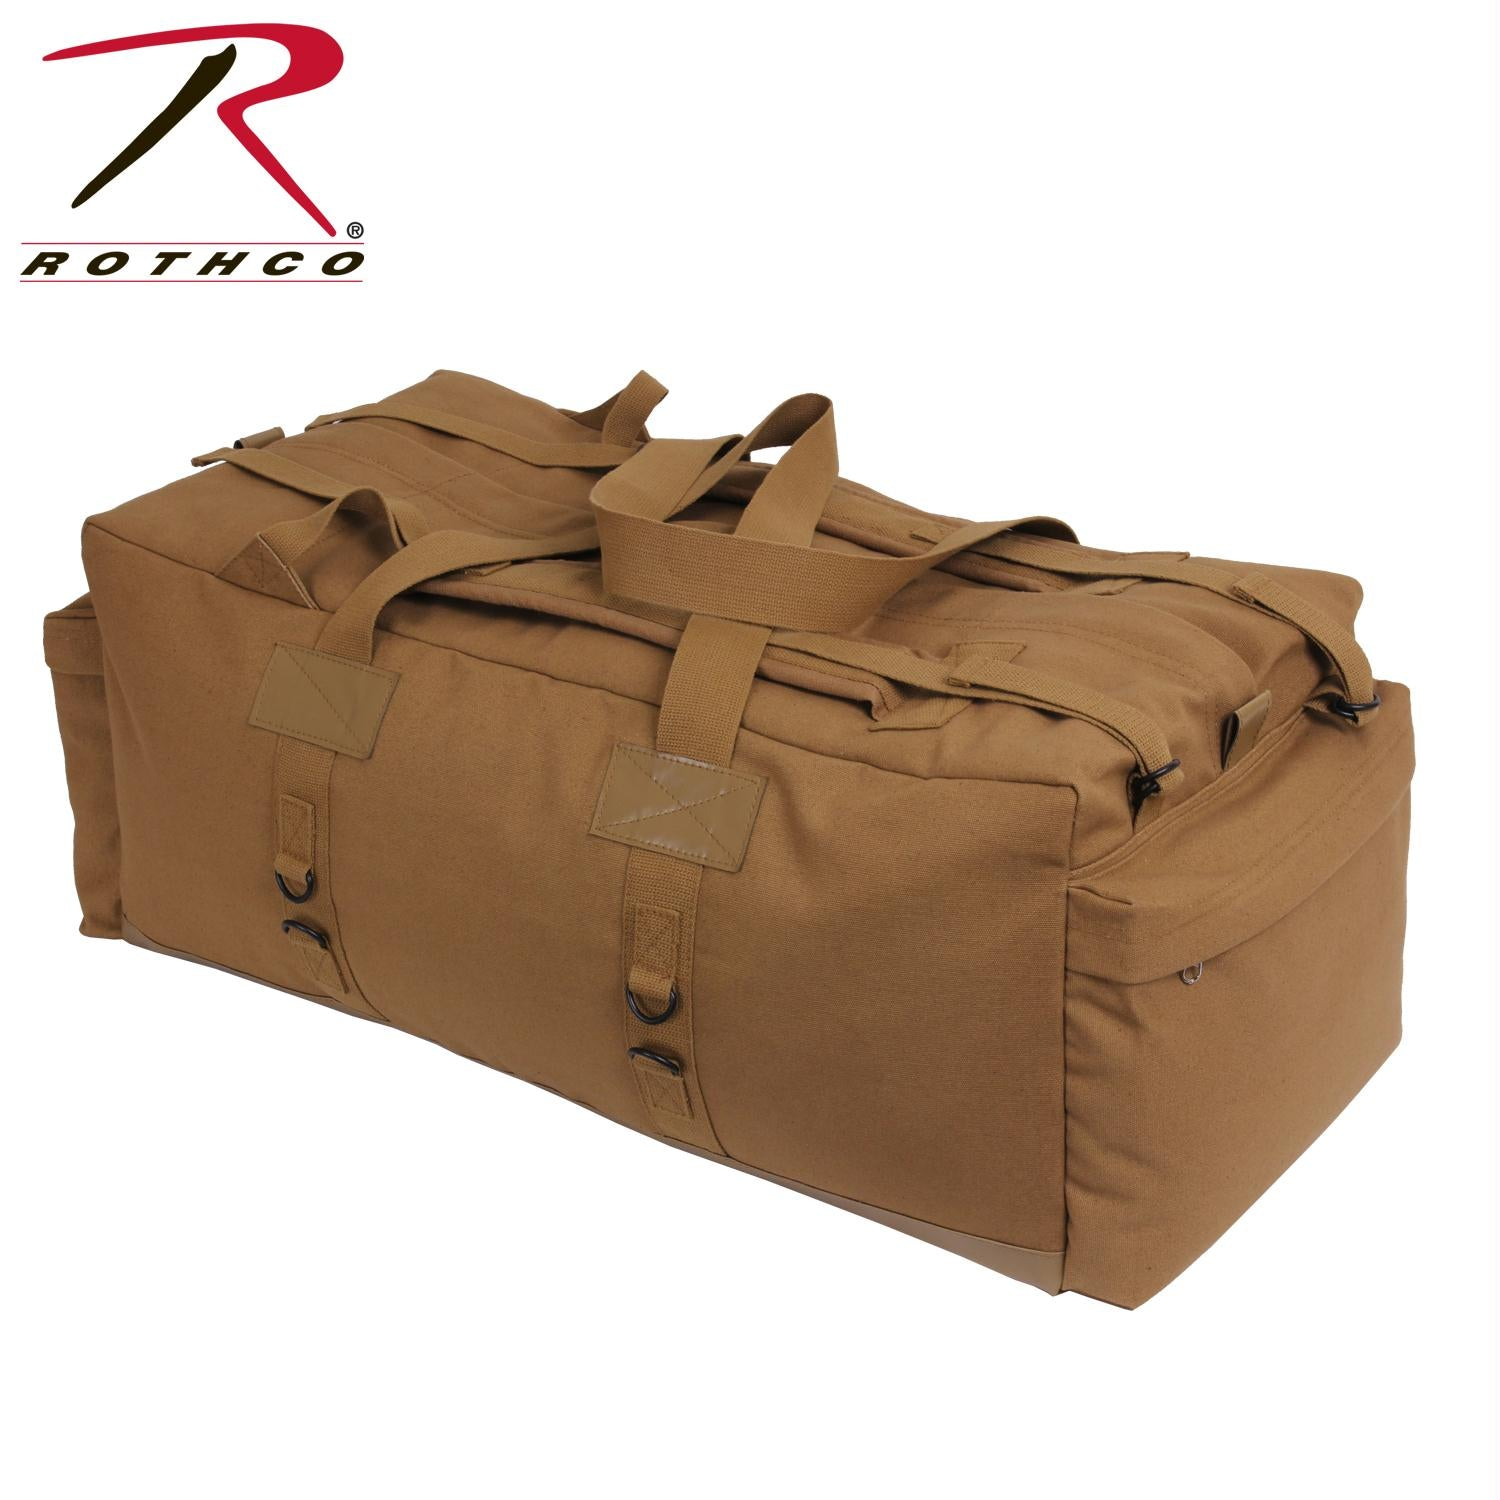 Rothco Mossad Tactical Duffle Bag - Coyote Brown